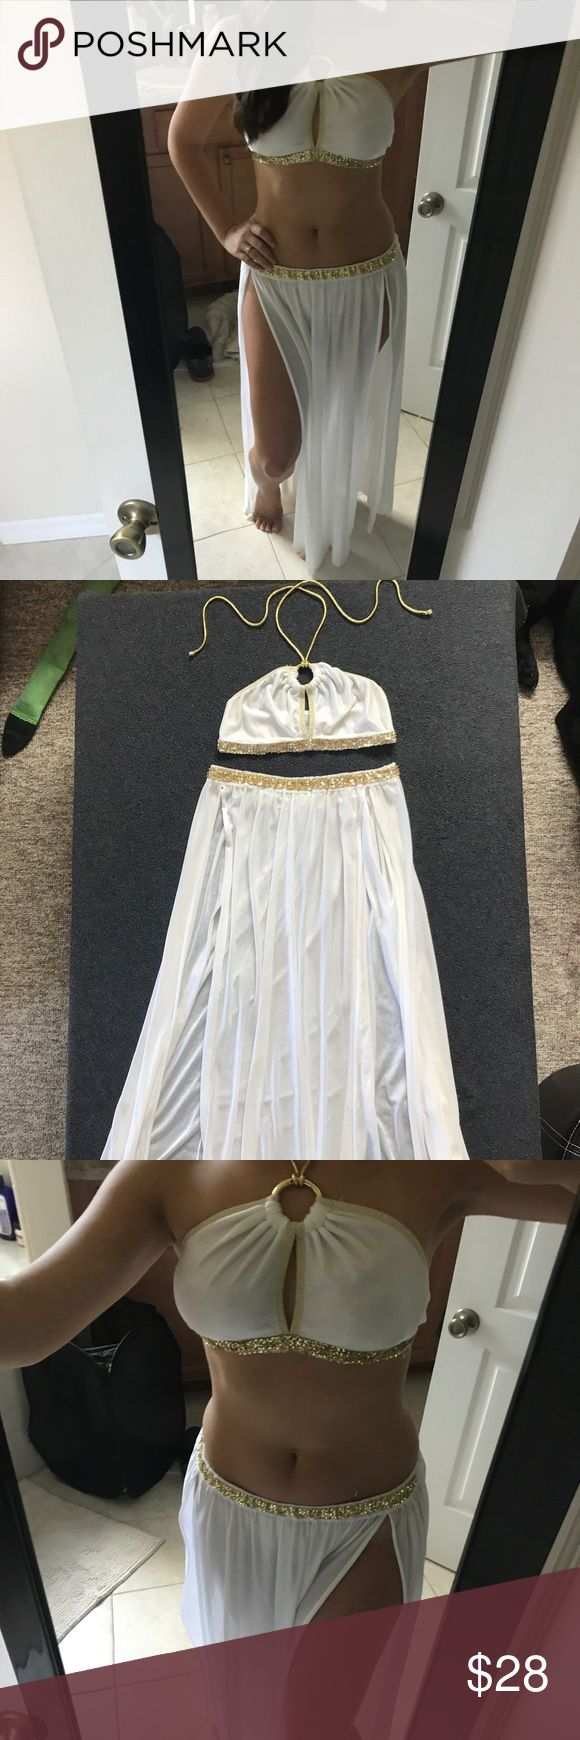 Goddess Halloween Costume Leg Avenue Sz S Great condition! Flaws at show in last two pictures- some light minor stains on the back of the draped skirt, and small area of sequins missing on the top but not noticeable since it is on the side under the arm when on. Size small from Leg Avenue Other